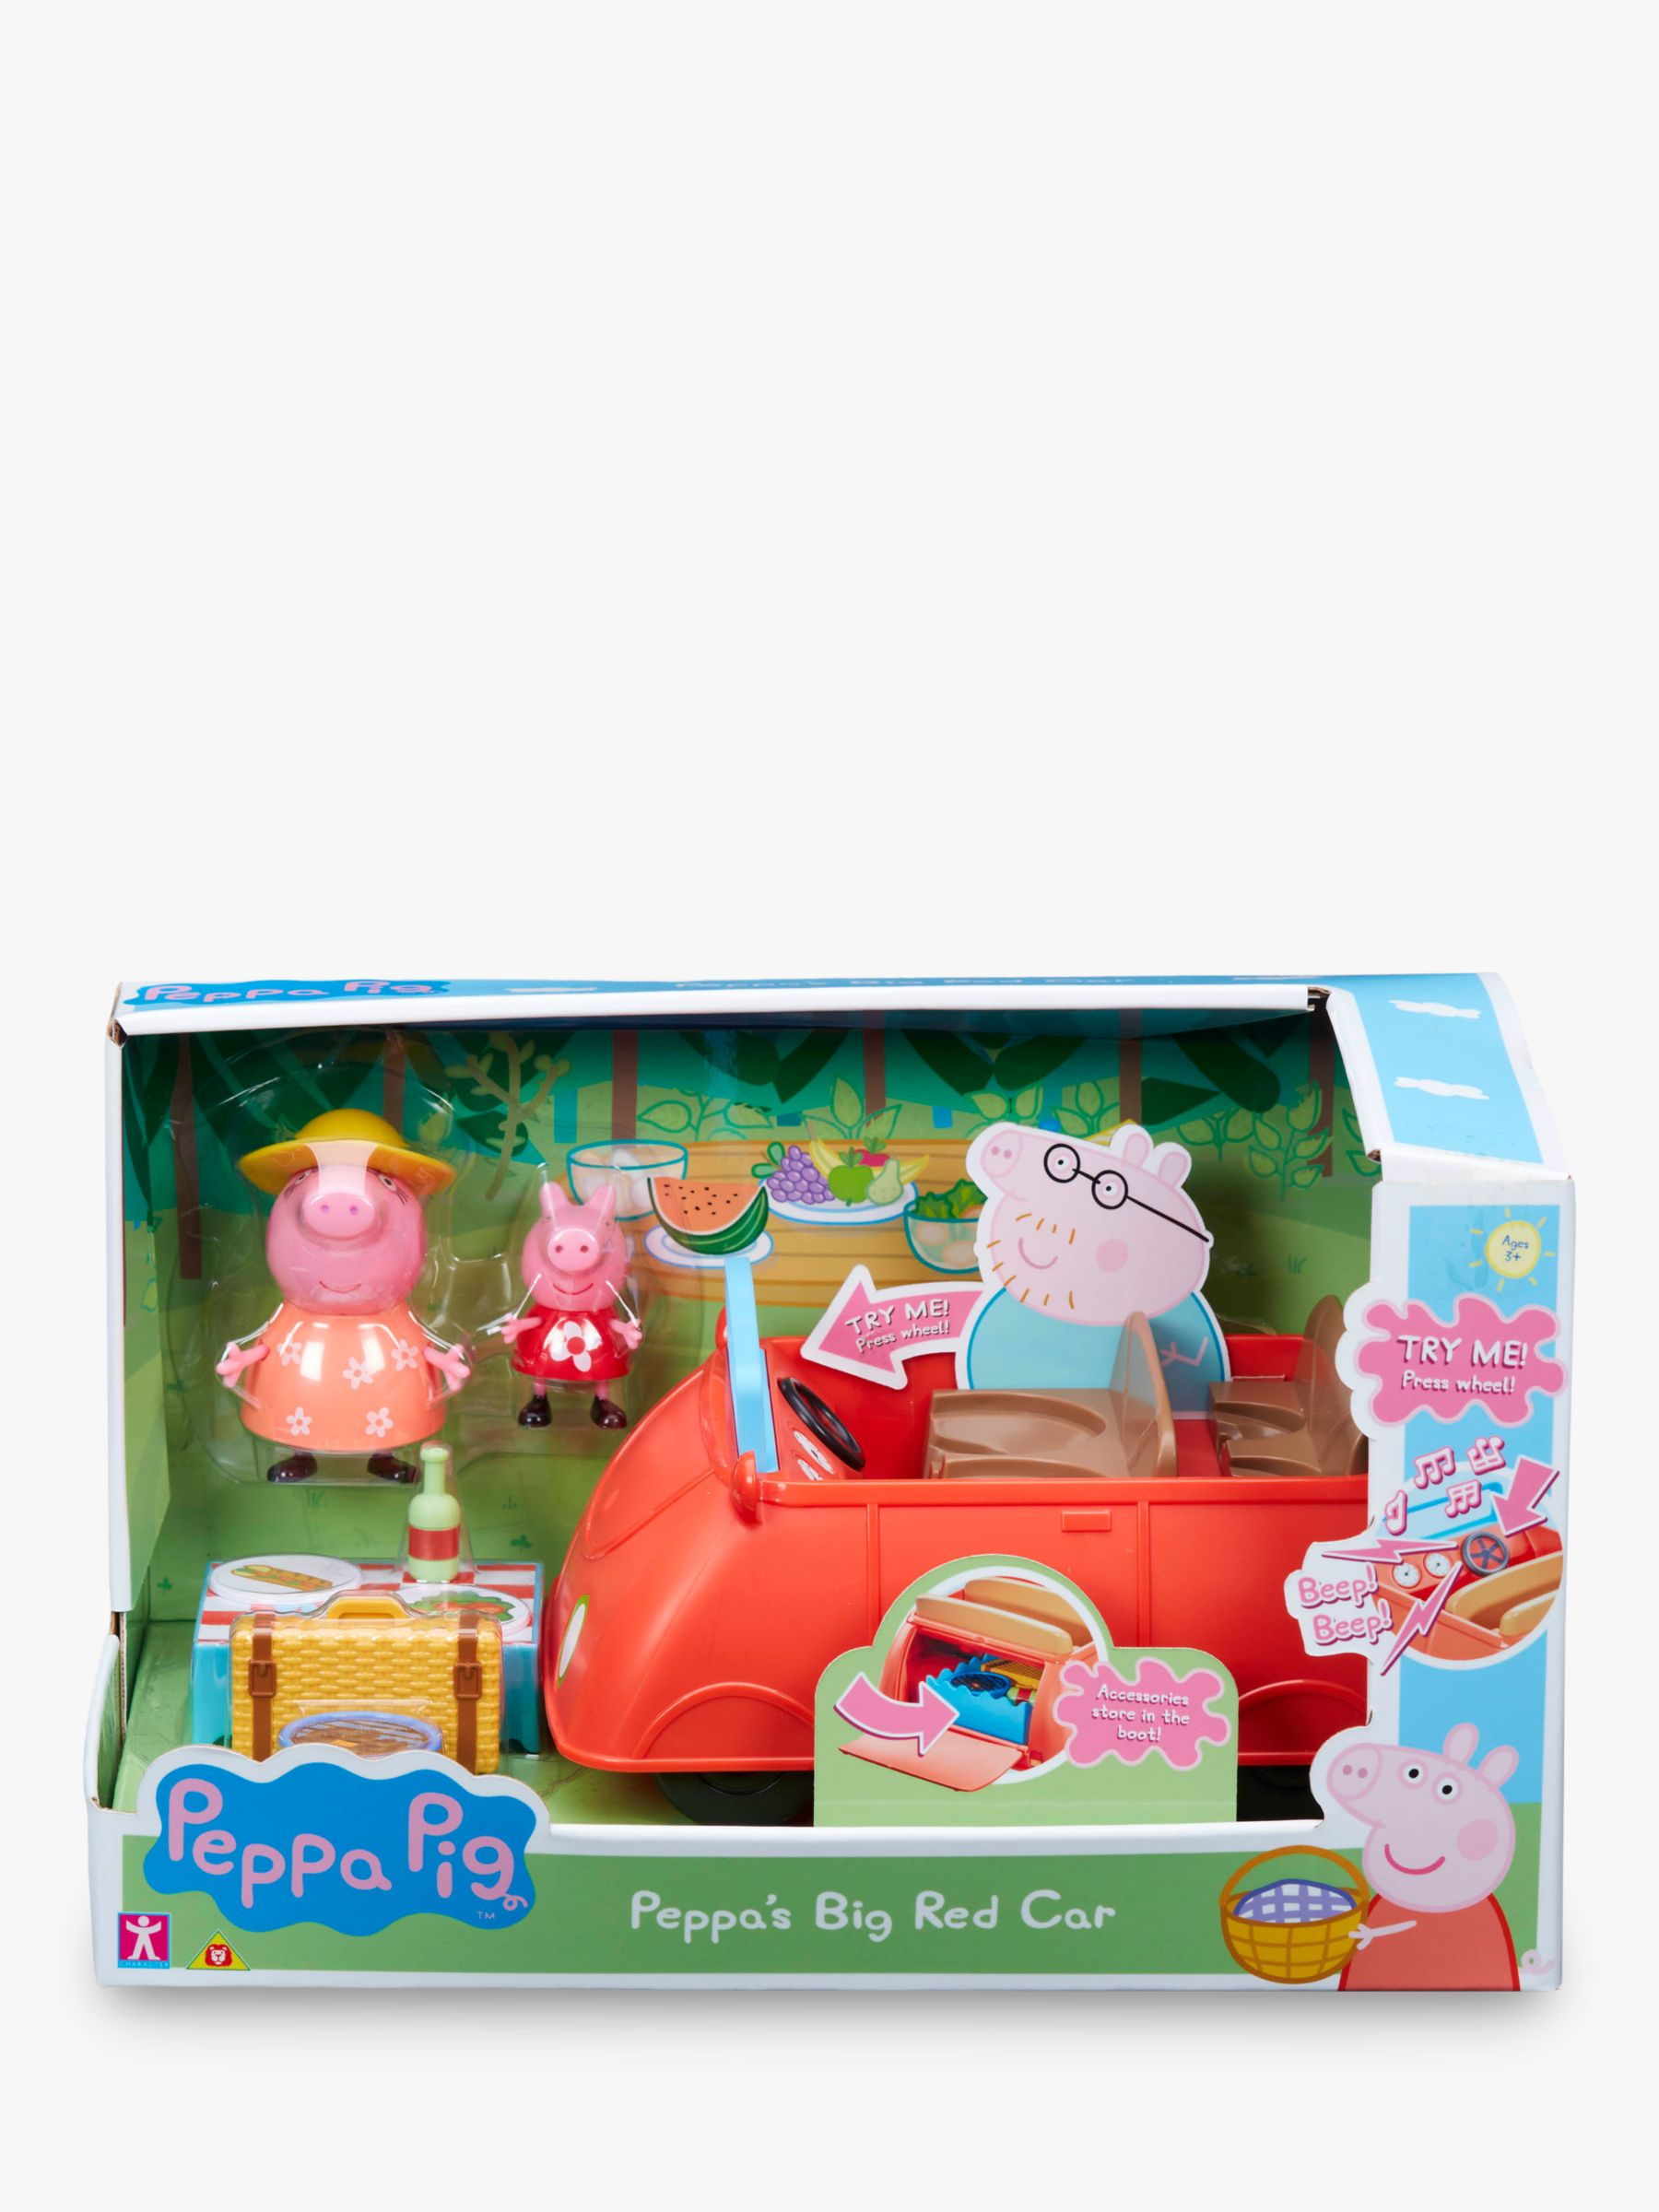 Peppa Pig Peppa Pig Peppa's Big Red Car